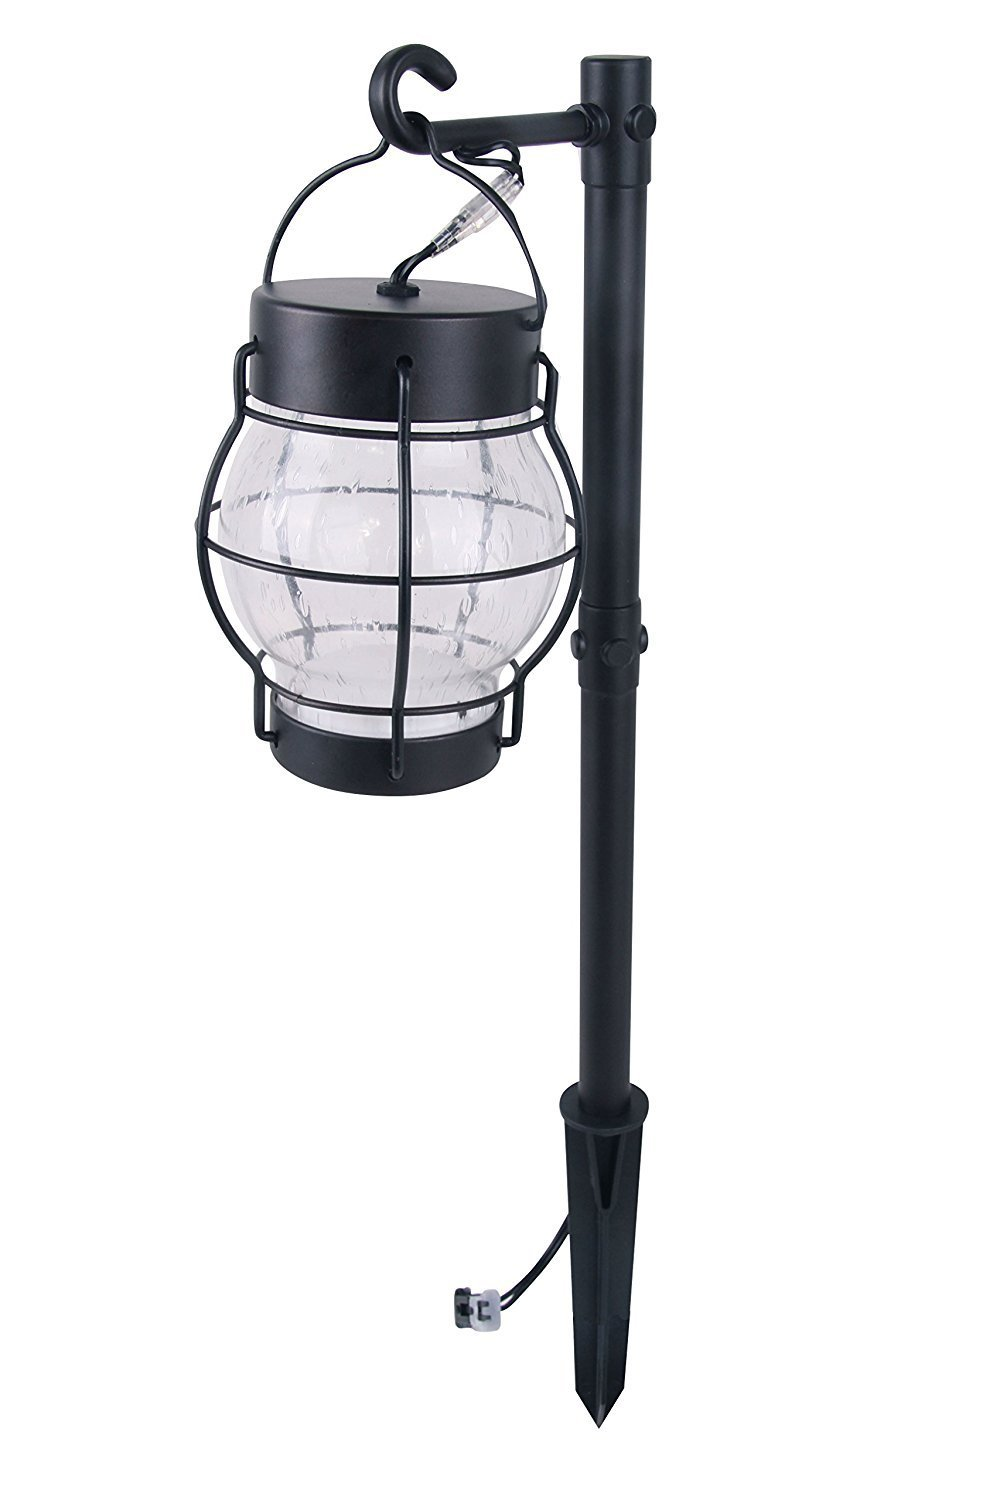 Malibu Low Voltage Landscape Lighting 8406 2151 01 Daybreak Led Pathway Light 0